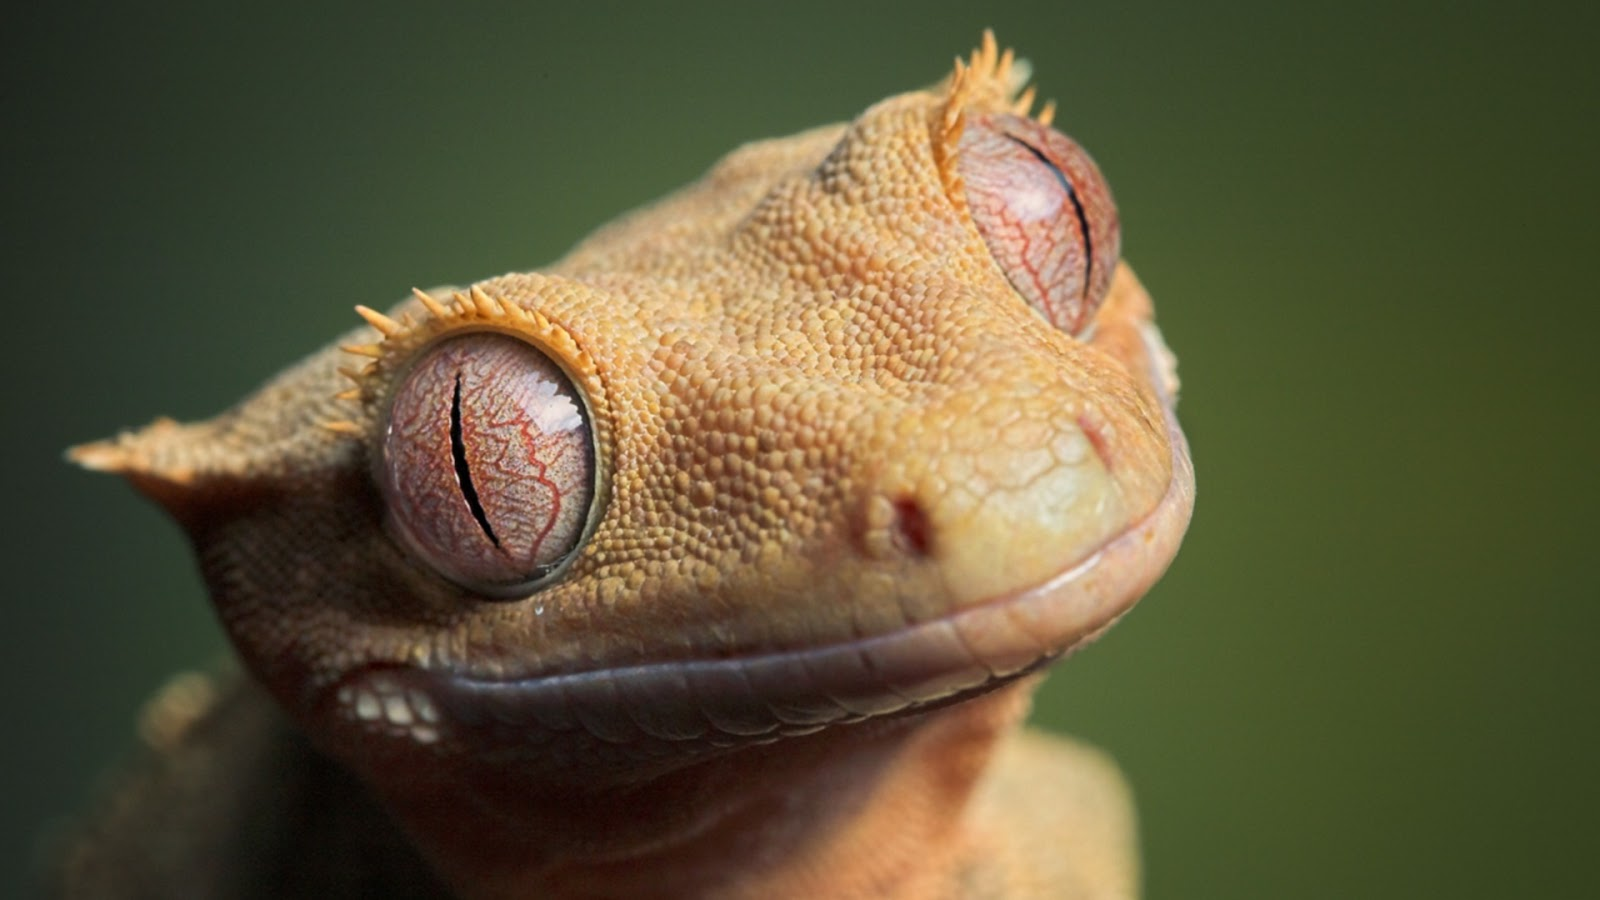 22 reptile hd wallpapers - photo #20